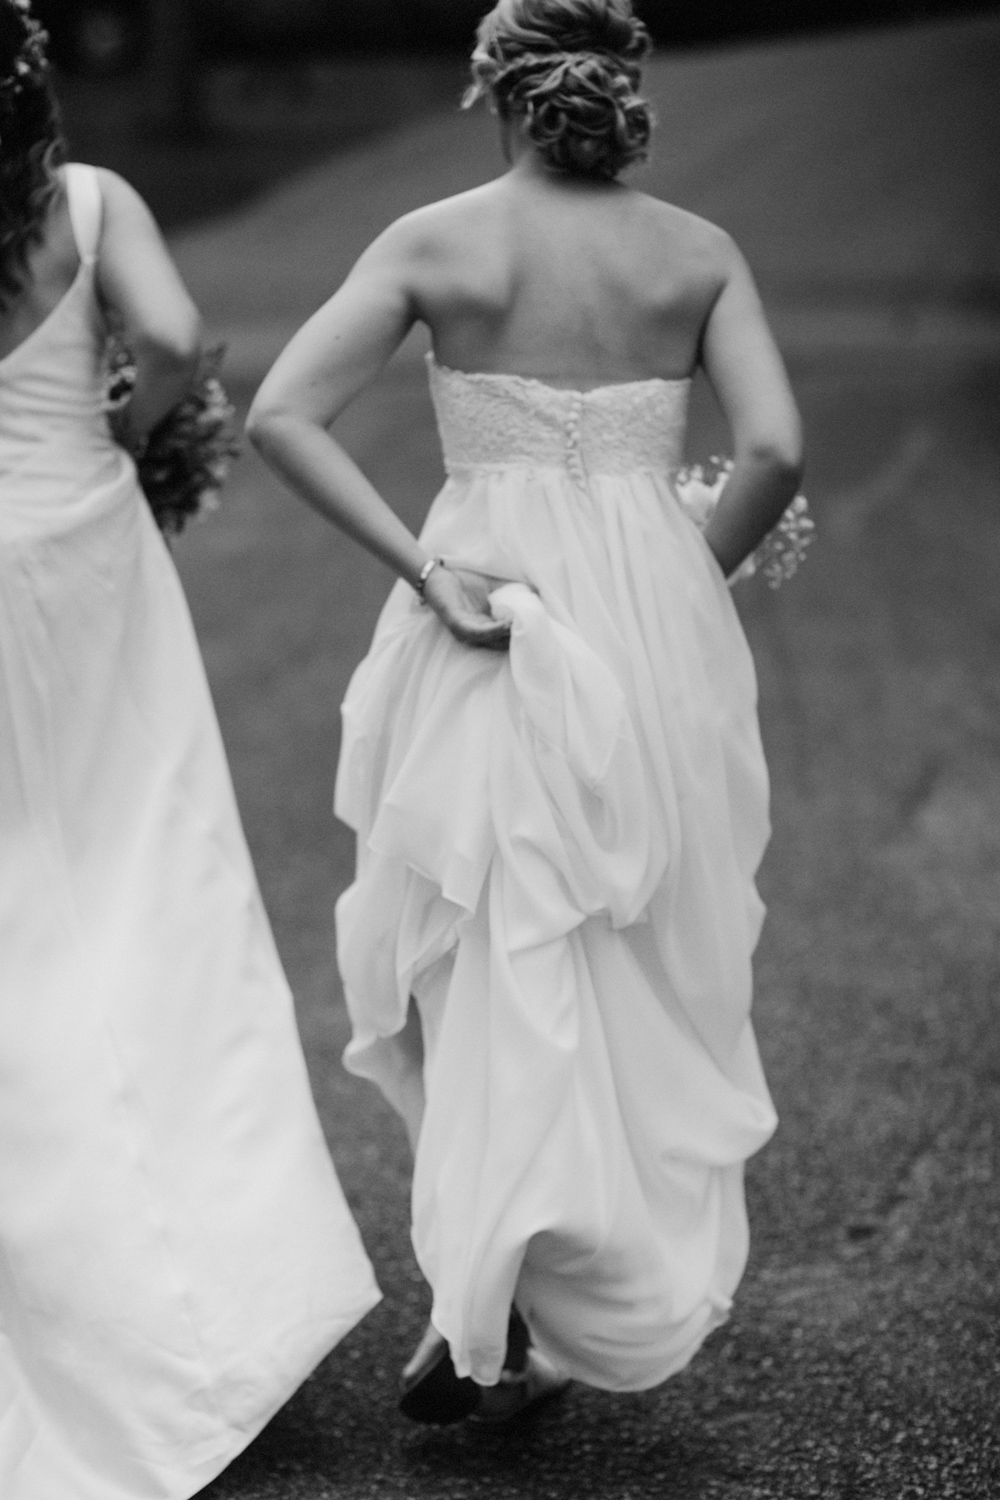 Bride holding her dress and walking uphill